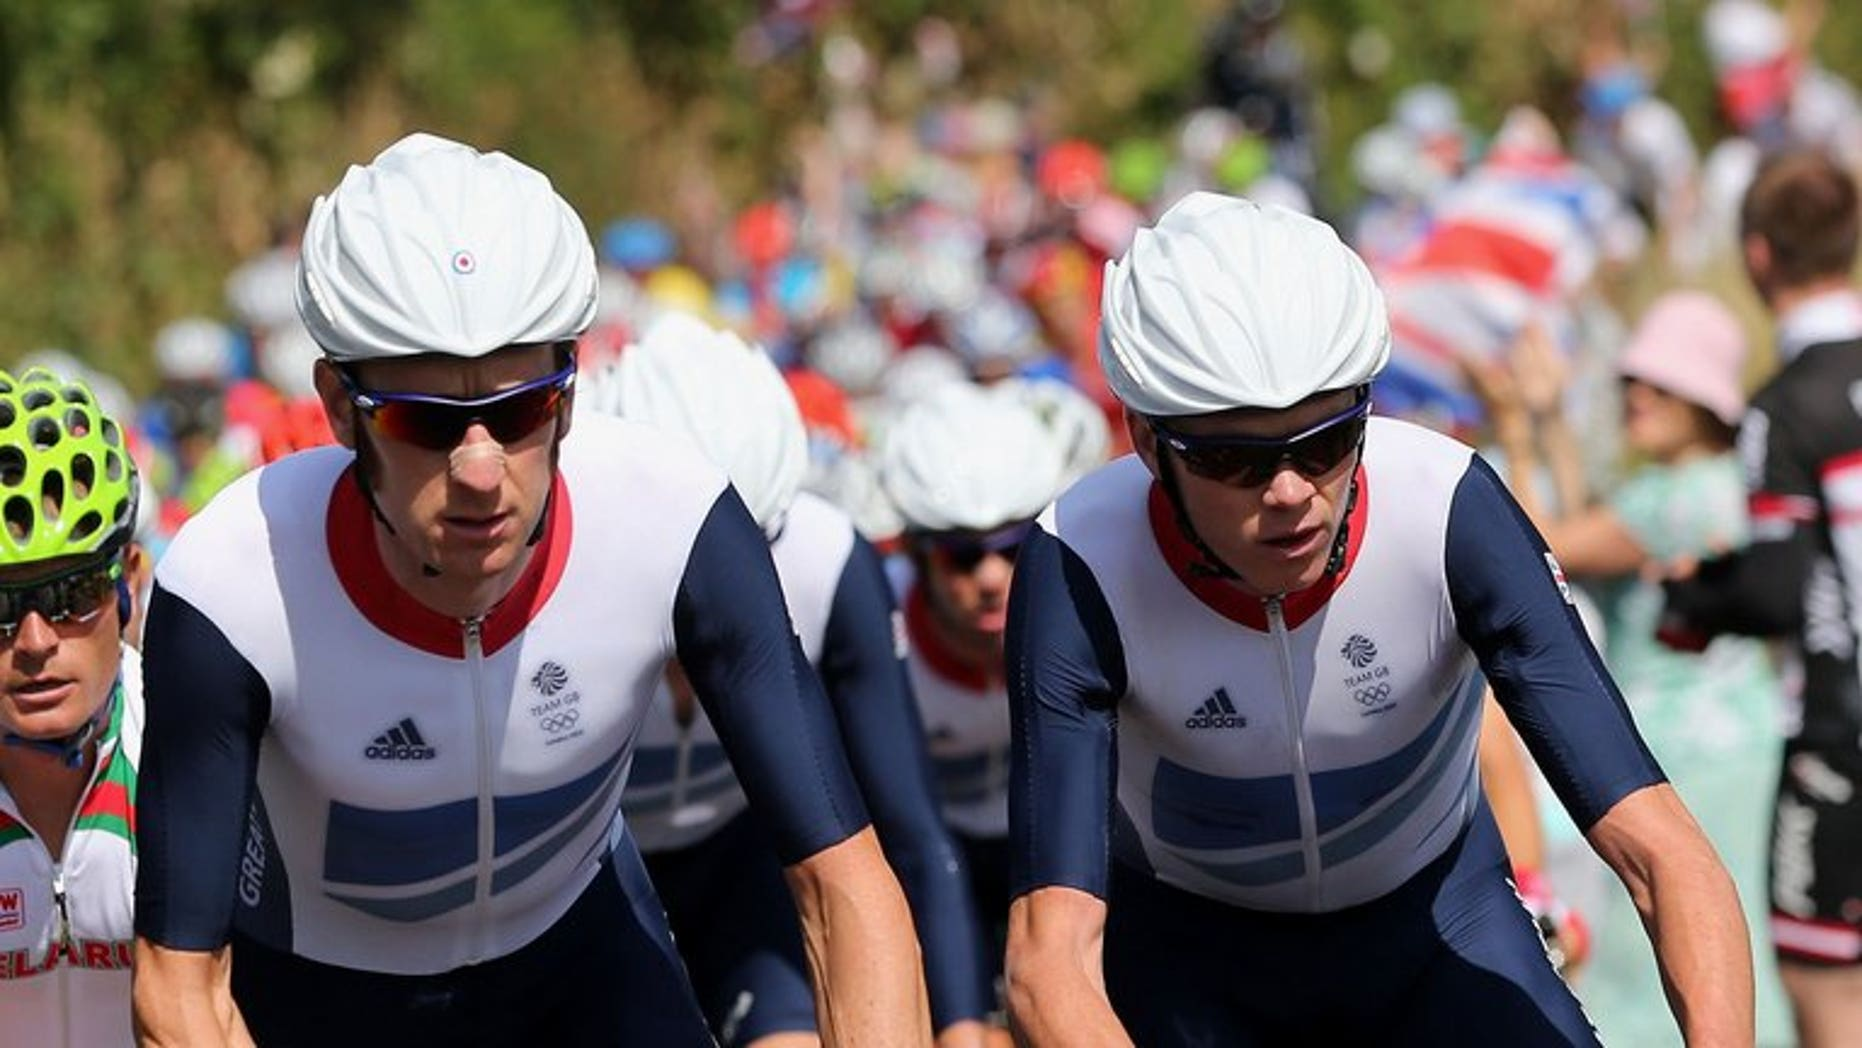 Bradley Wiggins (L) rides next to Chris Froome (R) in the London 2012 Olympic Games on July 28, 2012. Team Sky boss Dave Brailsford would love to see Froome and Wiggins, the last two Tour de France winners, lining up together when the race heads to Britain next year.